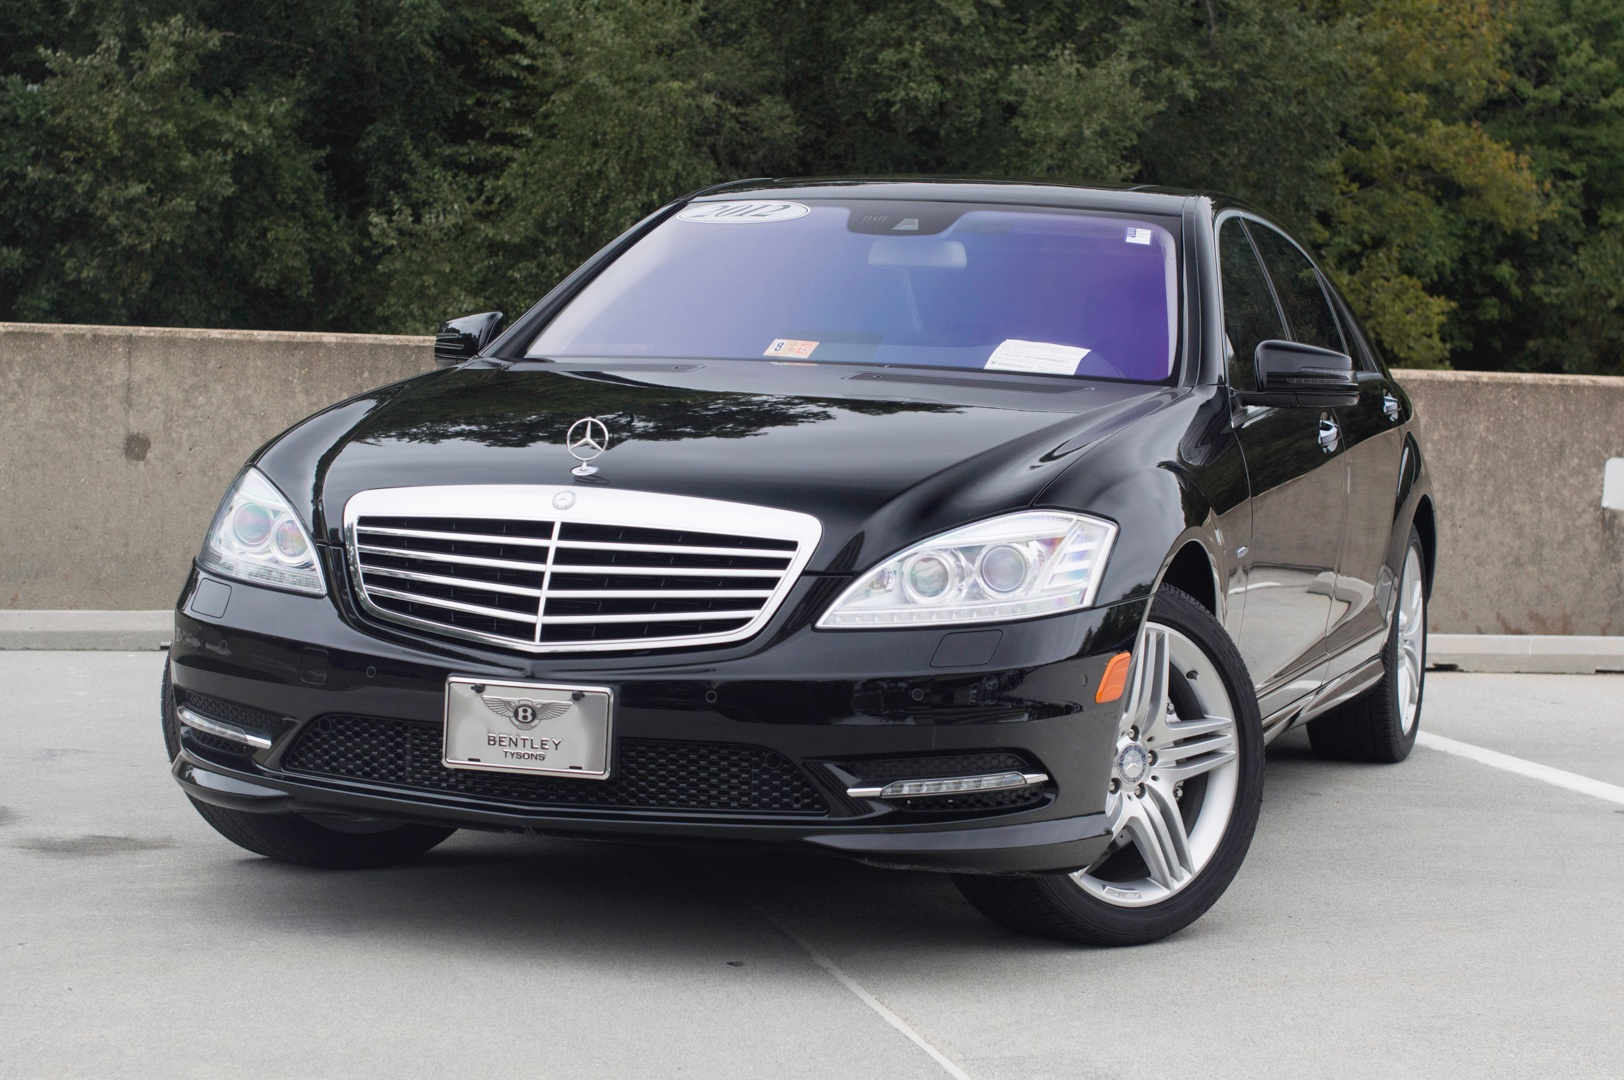 2012 mercedes benz s550 4matic s550 4matic stock p454190 for Used s550 mercedes benz for sale